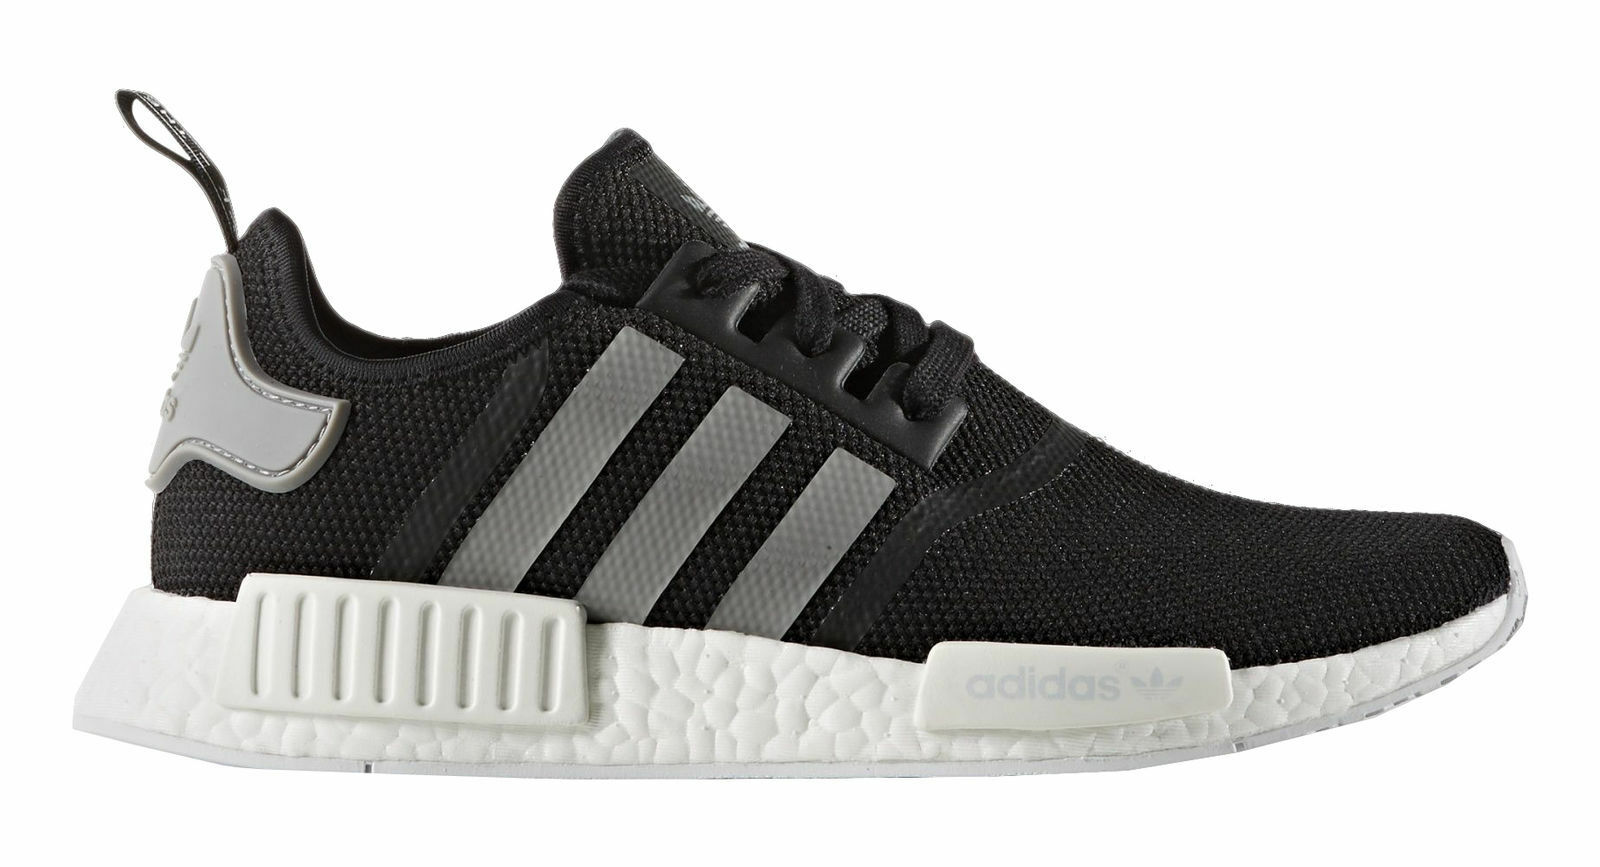 a19baec8f adidas NMD R1 Men s Running Shoes